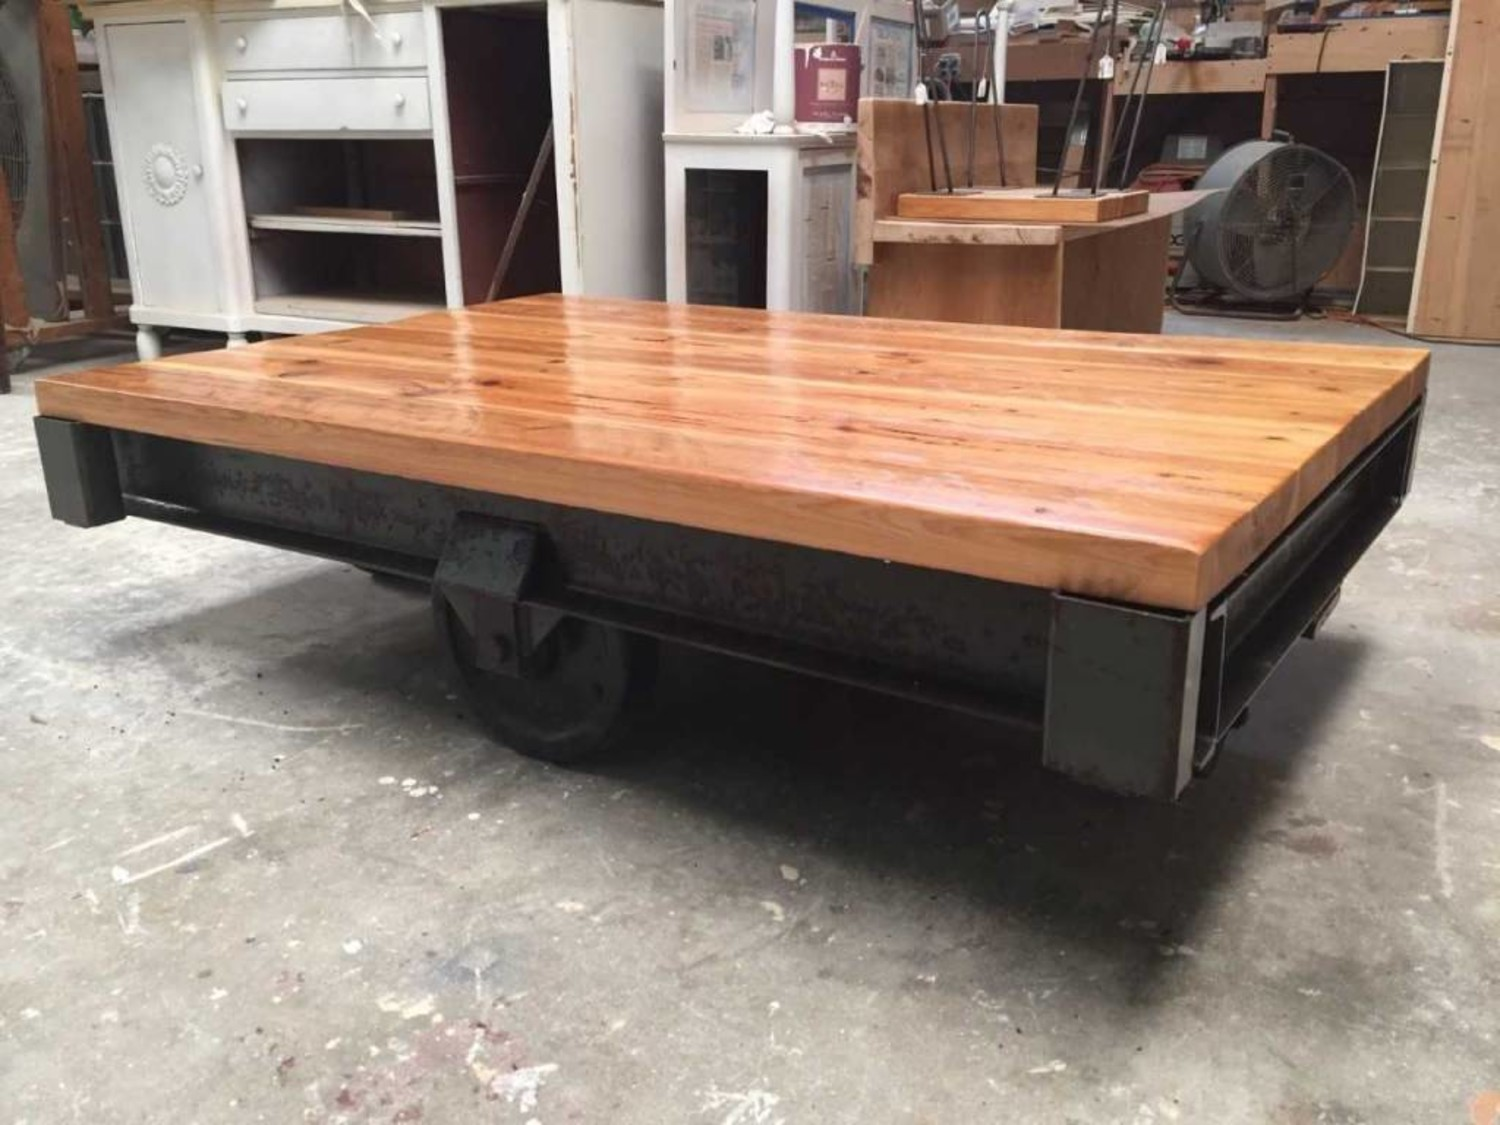 Remarkable Industrial Pecky Cypress Cart Coffee Table Creativecarmelina Interior Chair Design Creativecarmelinacom